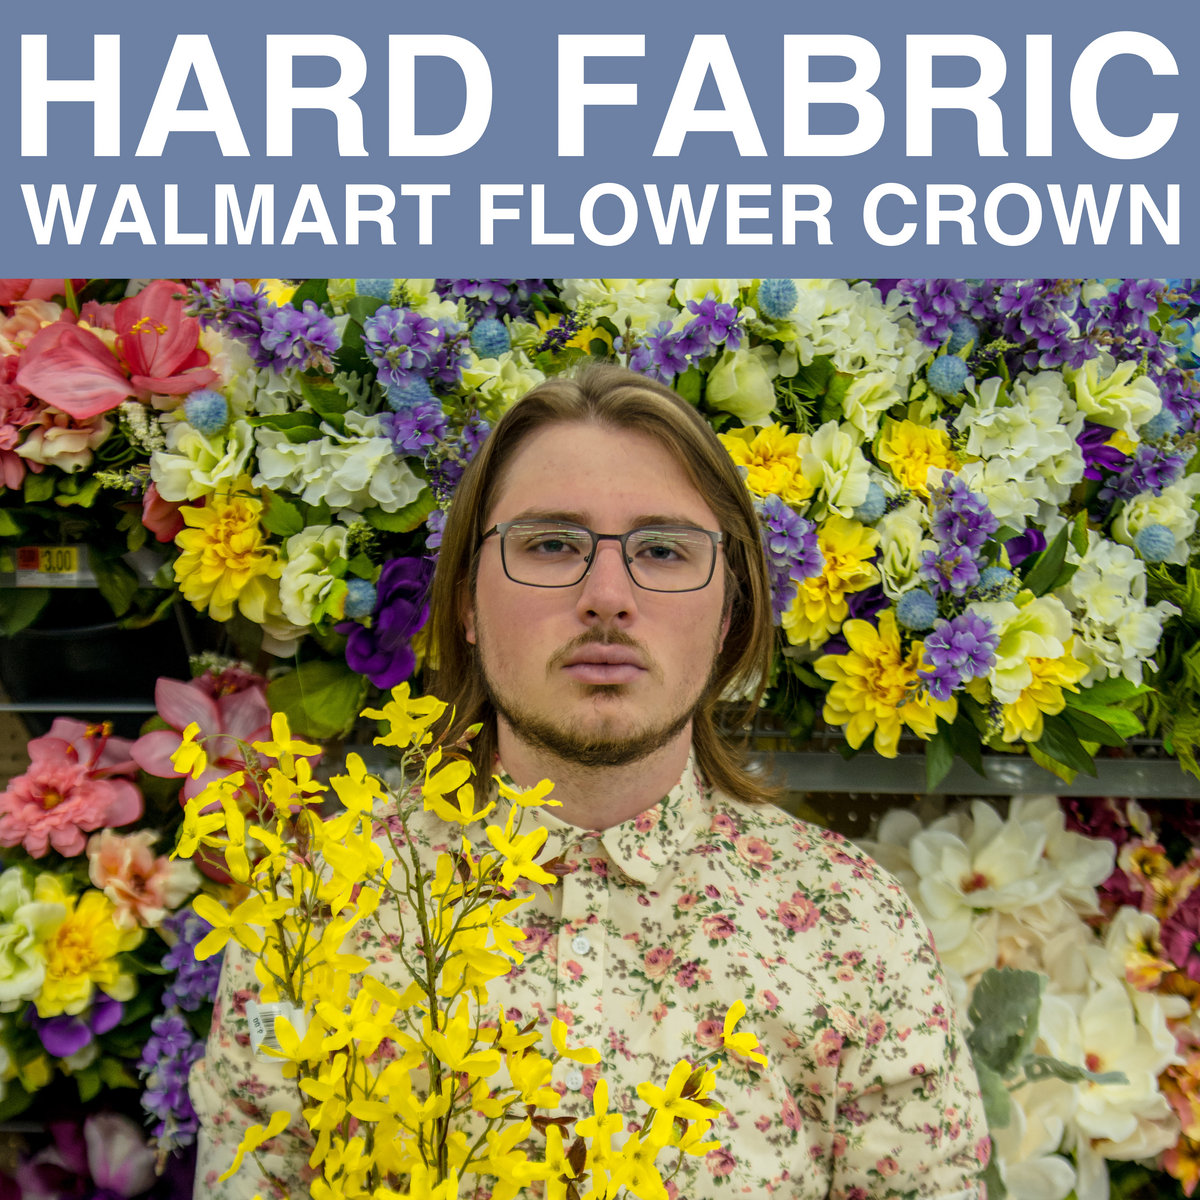 Walmart Flower Crown | Hard Fabric